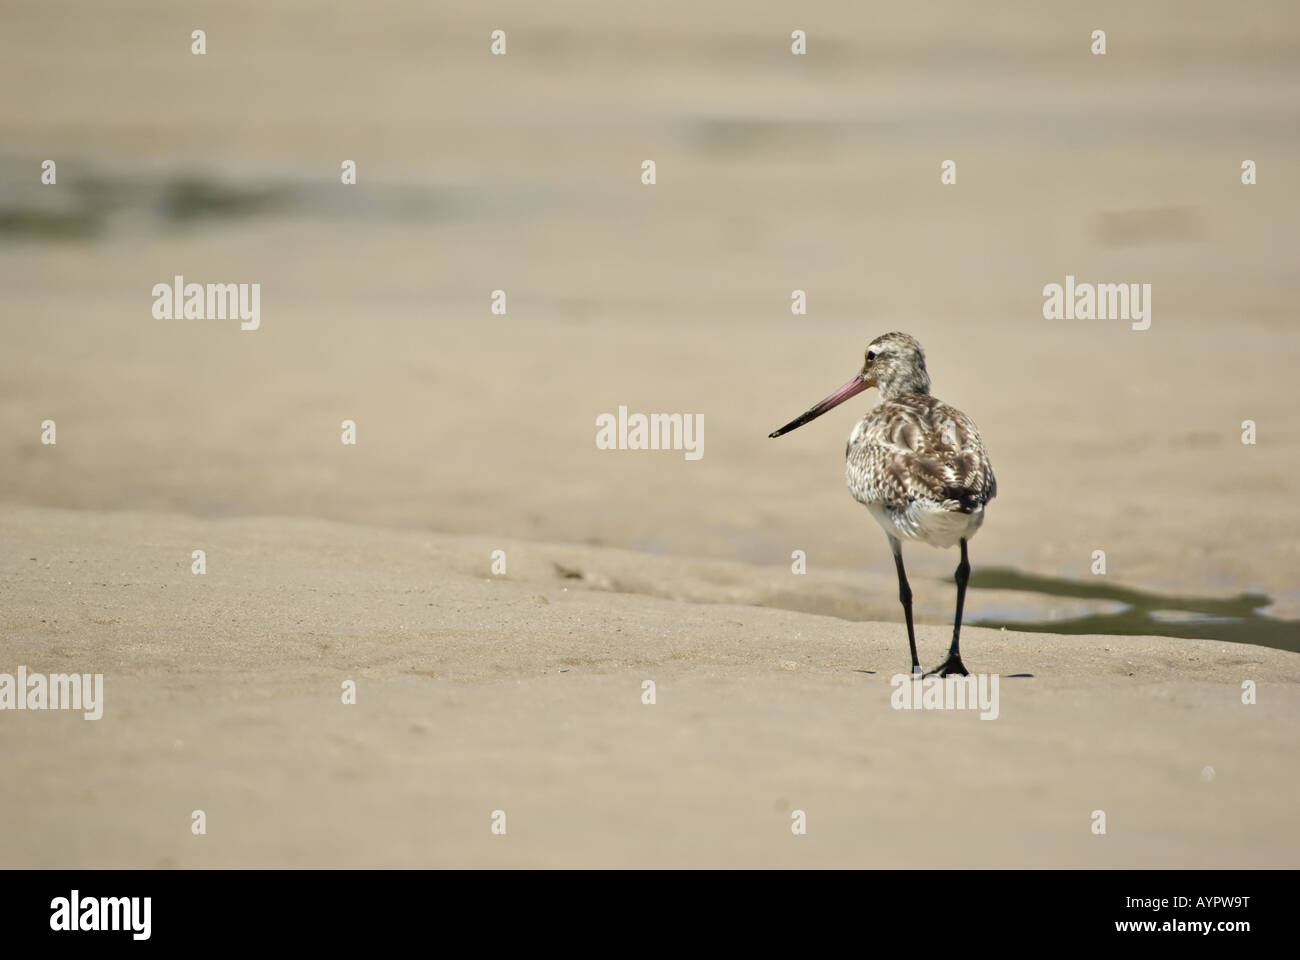 sand piper walks away narrow dof only head in focus - Stock Image